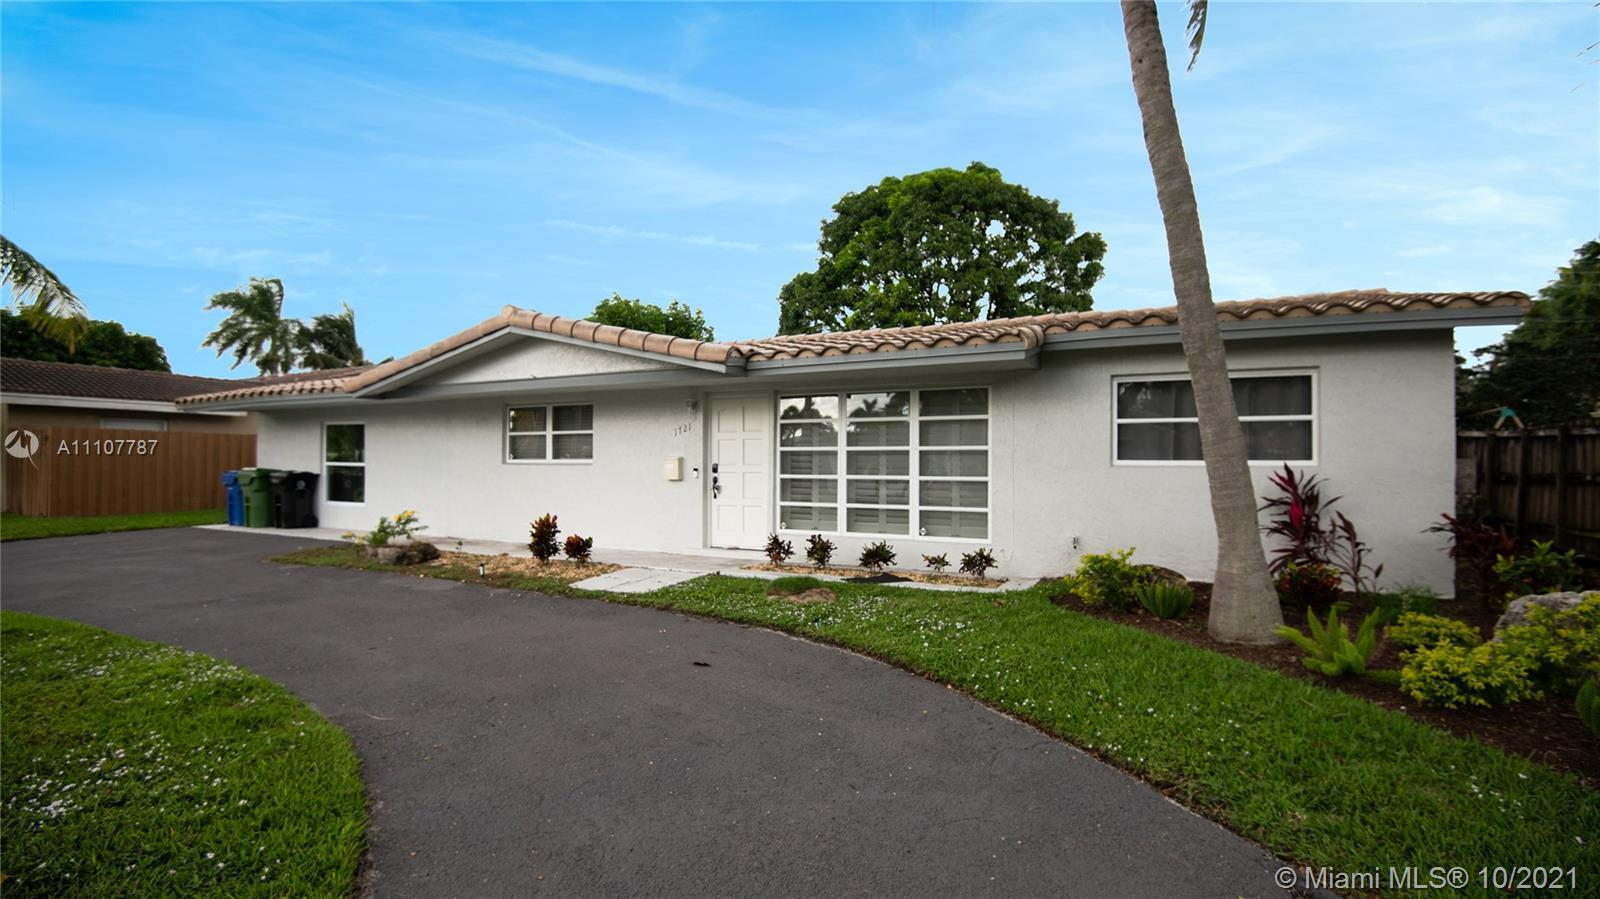 Welcome to this amazing, newly renovated, bright and spacious home located in the charming and desir